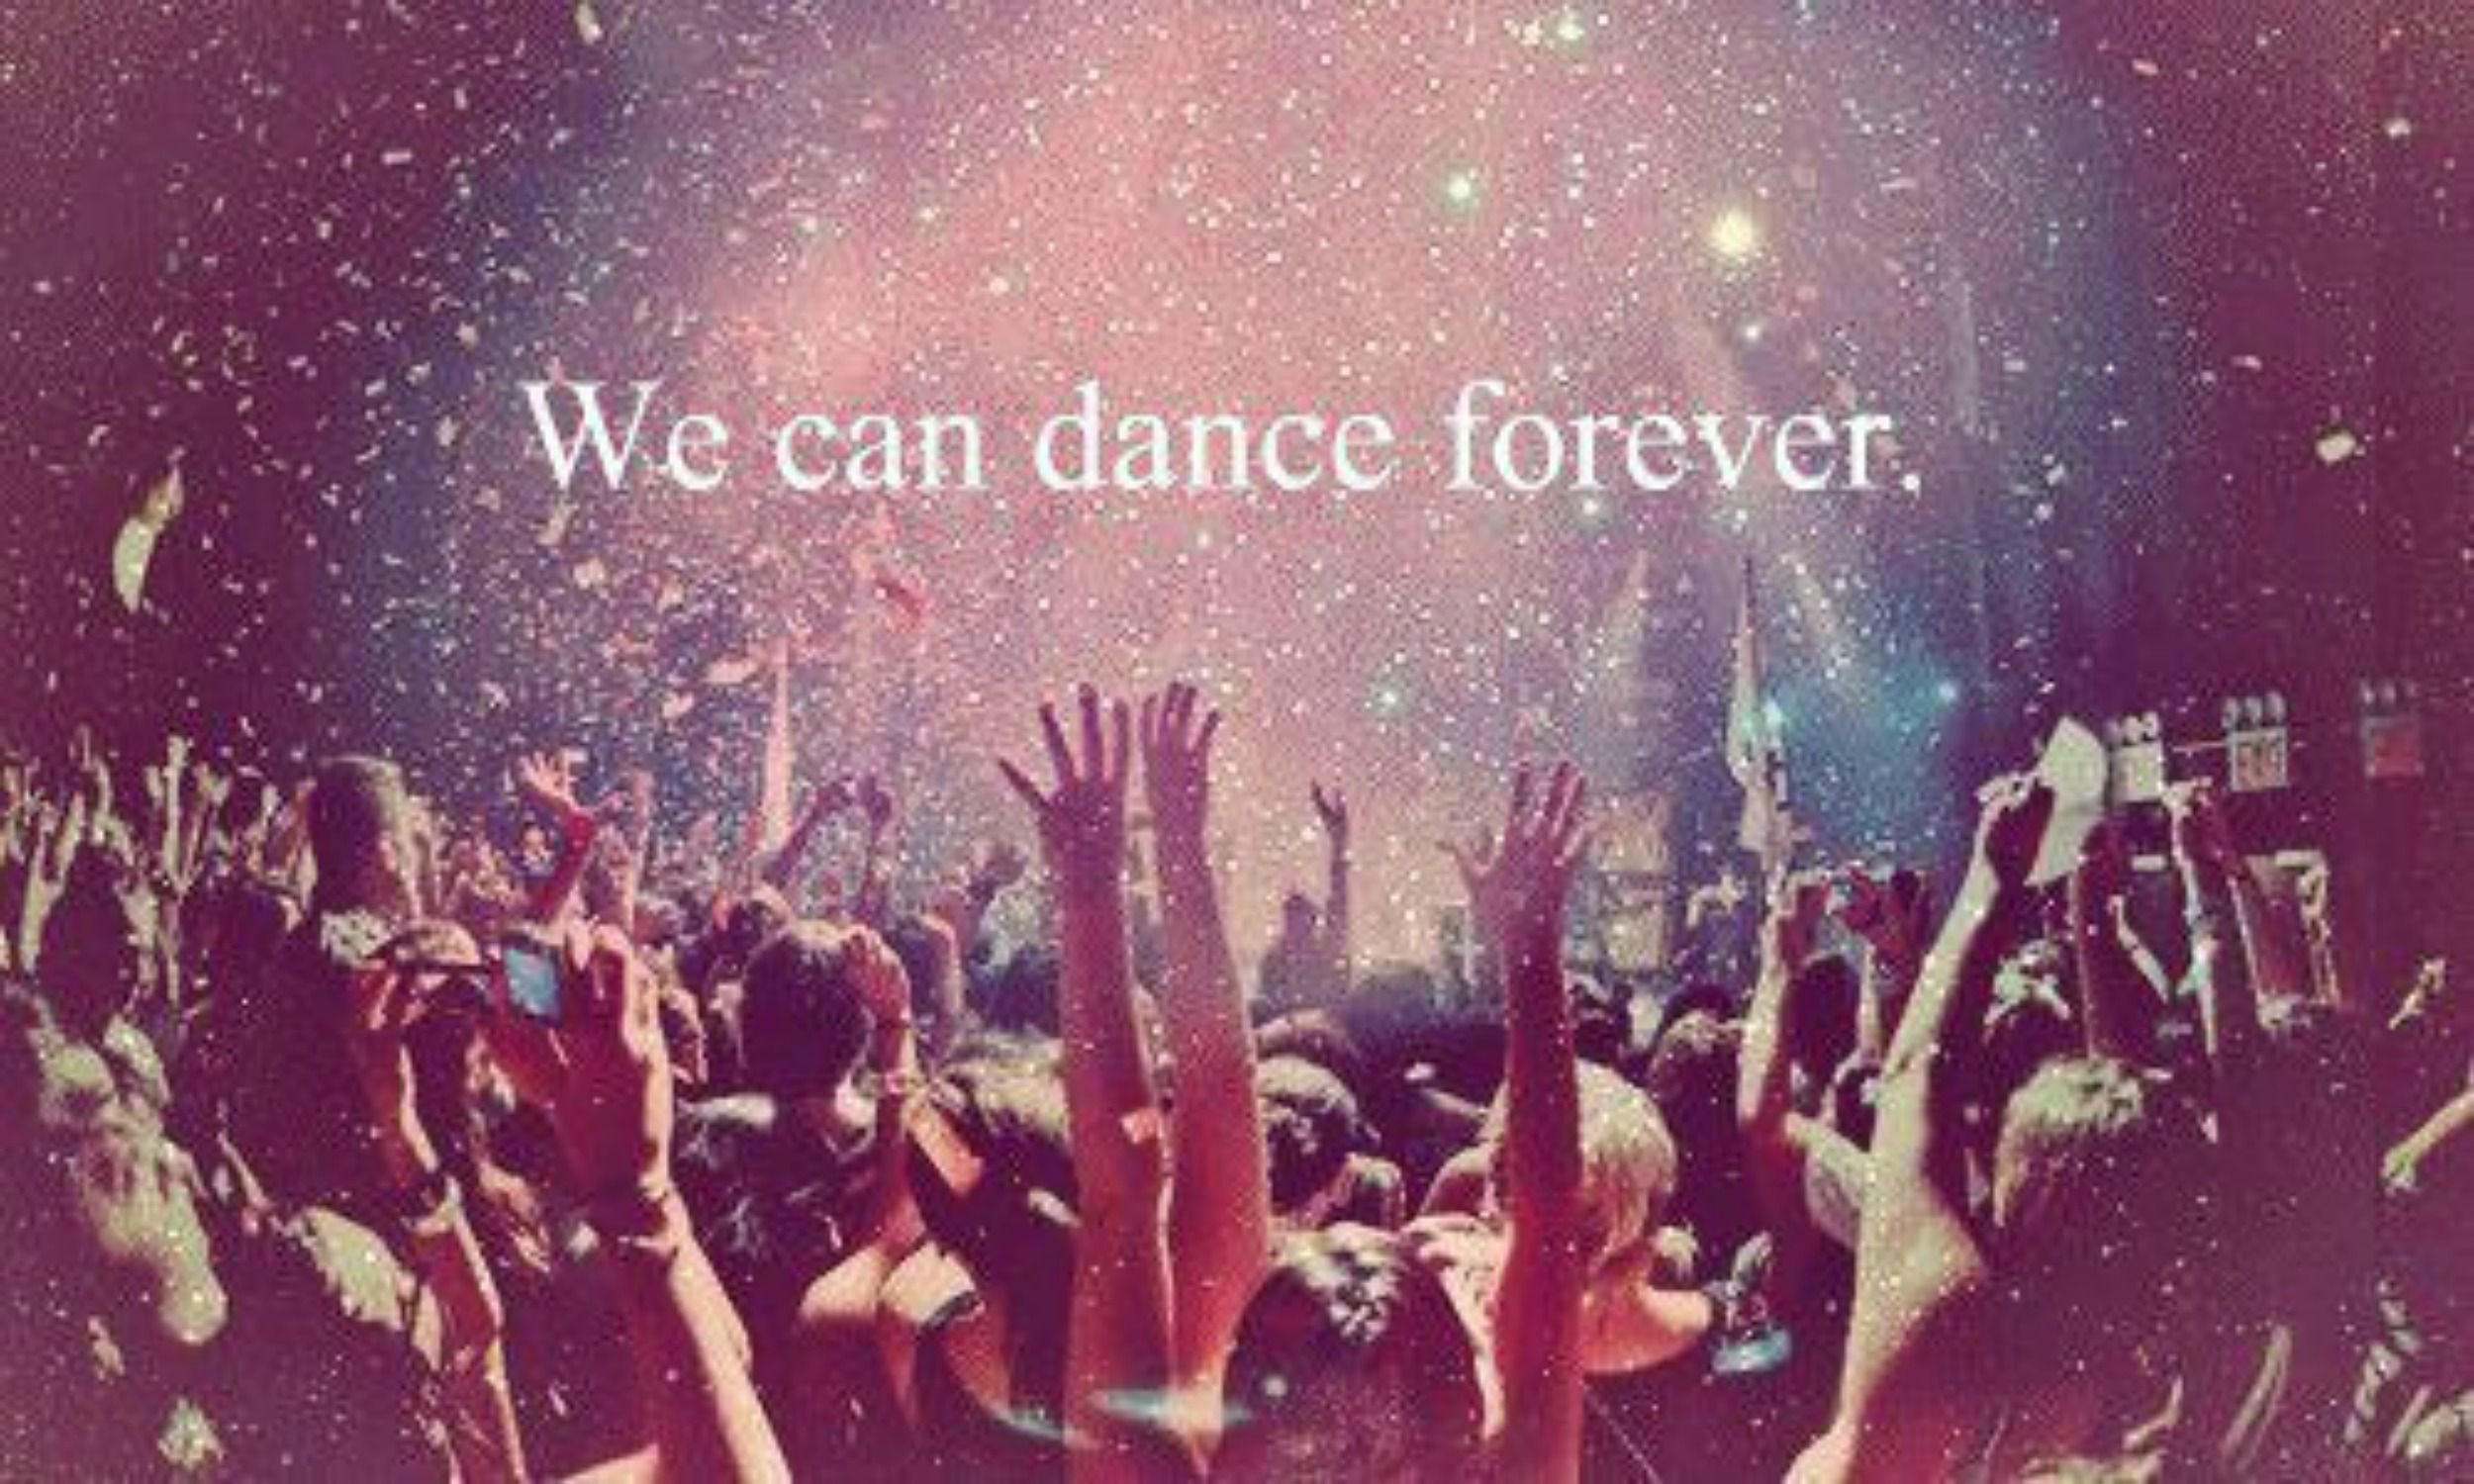 Rock and roll forever quotes quotesgram - We Can Dance Forever Dance Quote